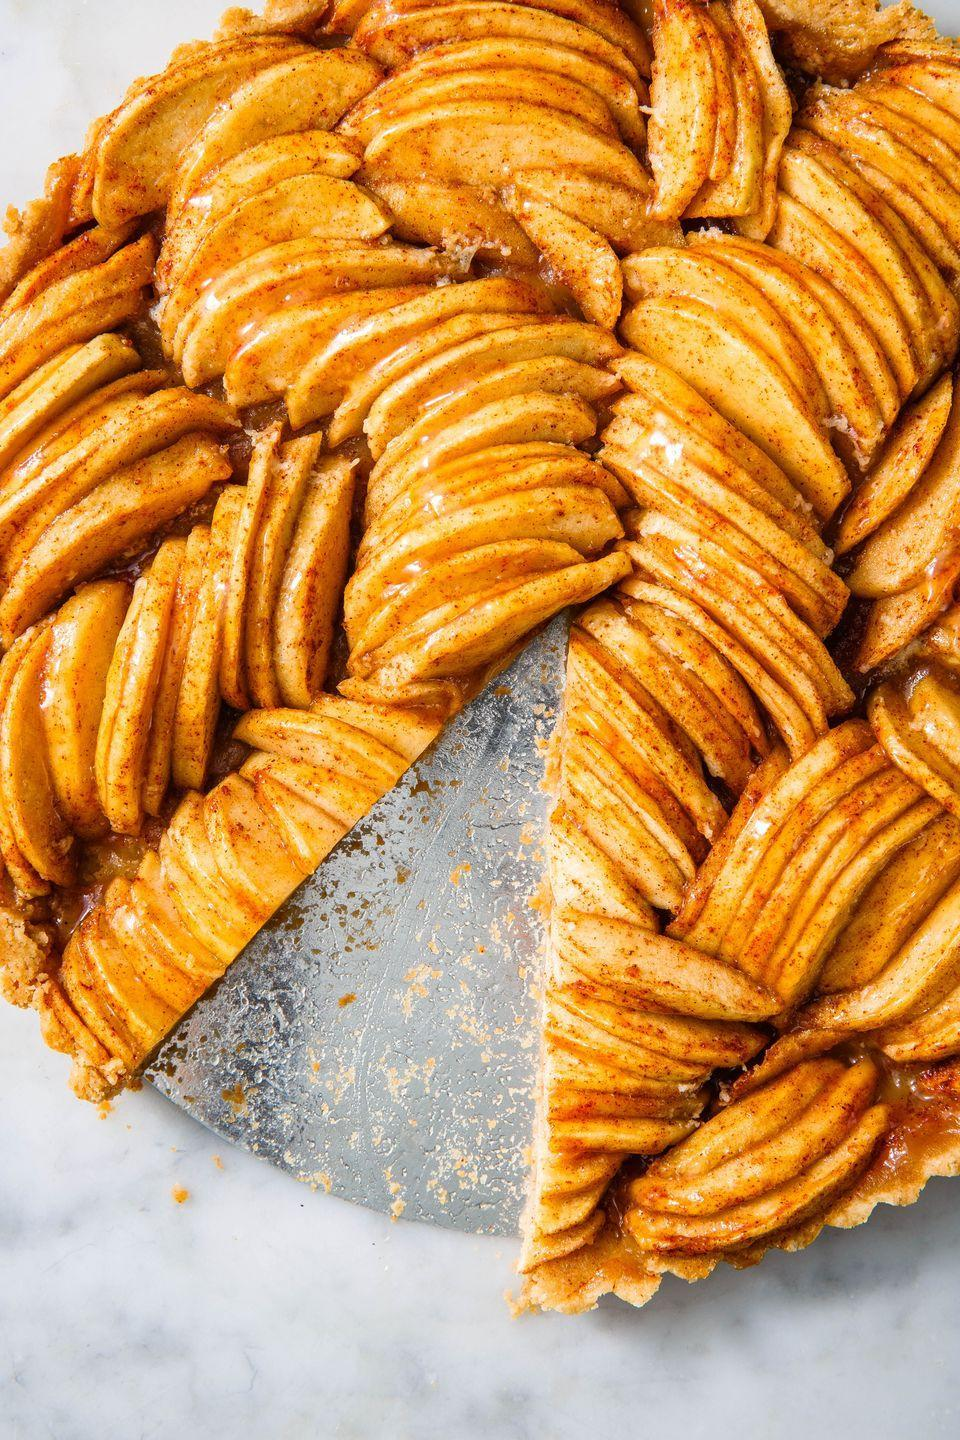 """<p>An apple tart worthy of your Thanksgiving table. </p><p>Get the recipe from <a href=""""https://www.delish.com/cooking/recipe-ideas/a23364812/apple-tart-recipe/"""" rel=""""nofollow noopener"""" target=""""_blank"""" data-ylk=""""slk:Delish"""" class=""""link rapid-noclick-resp"""">Delish</a>. </p>"""